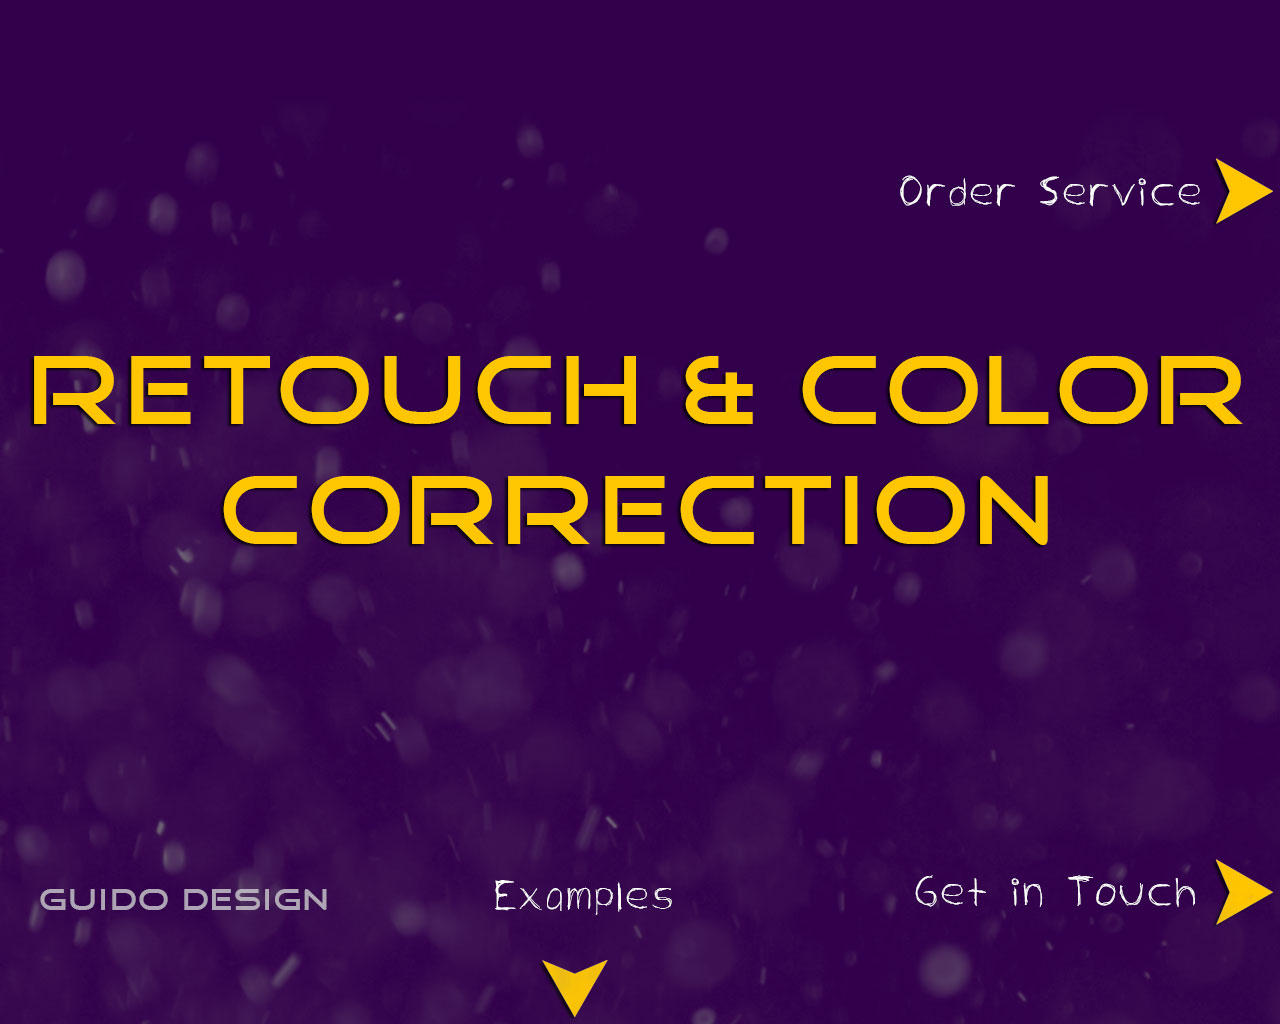 Professional Retouch & Color Correction by GuidoDesign - 66254